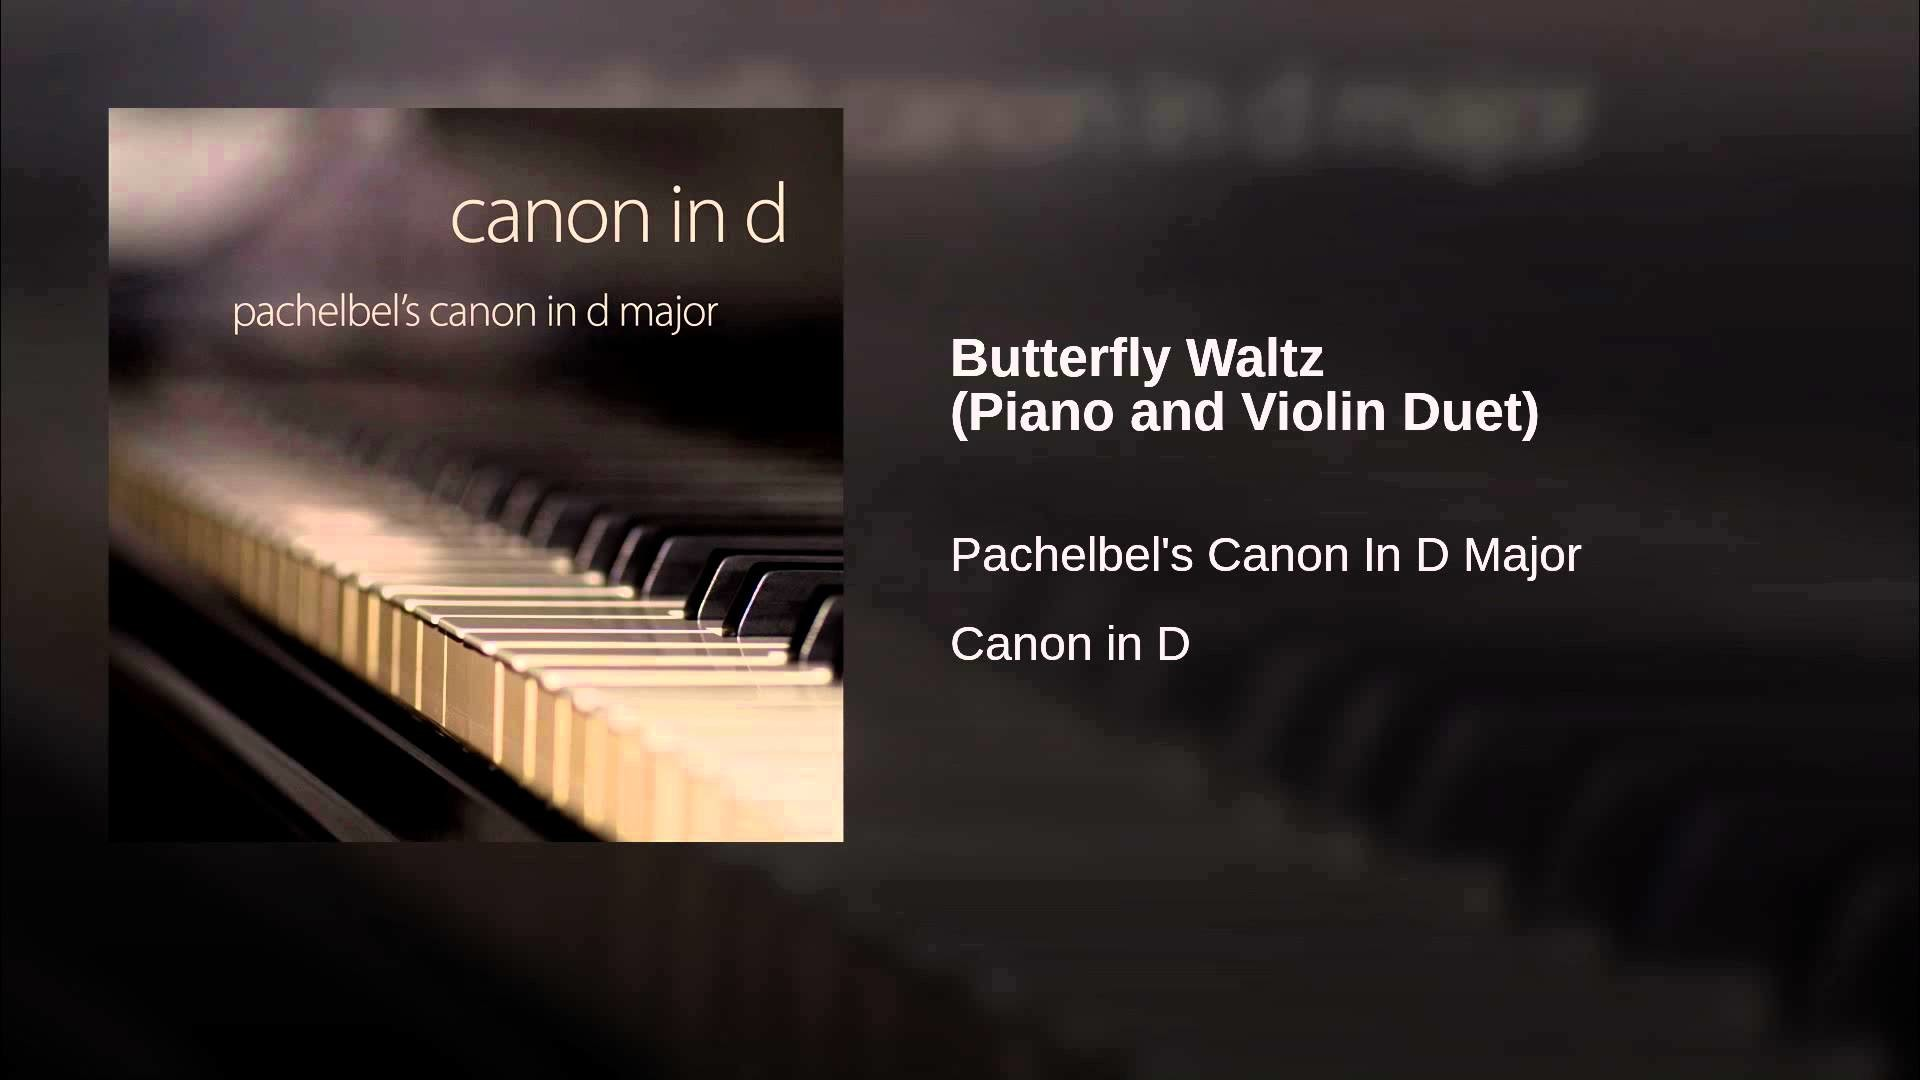 Butterfly Waltz (Piano and Violin Duet)